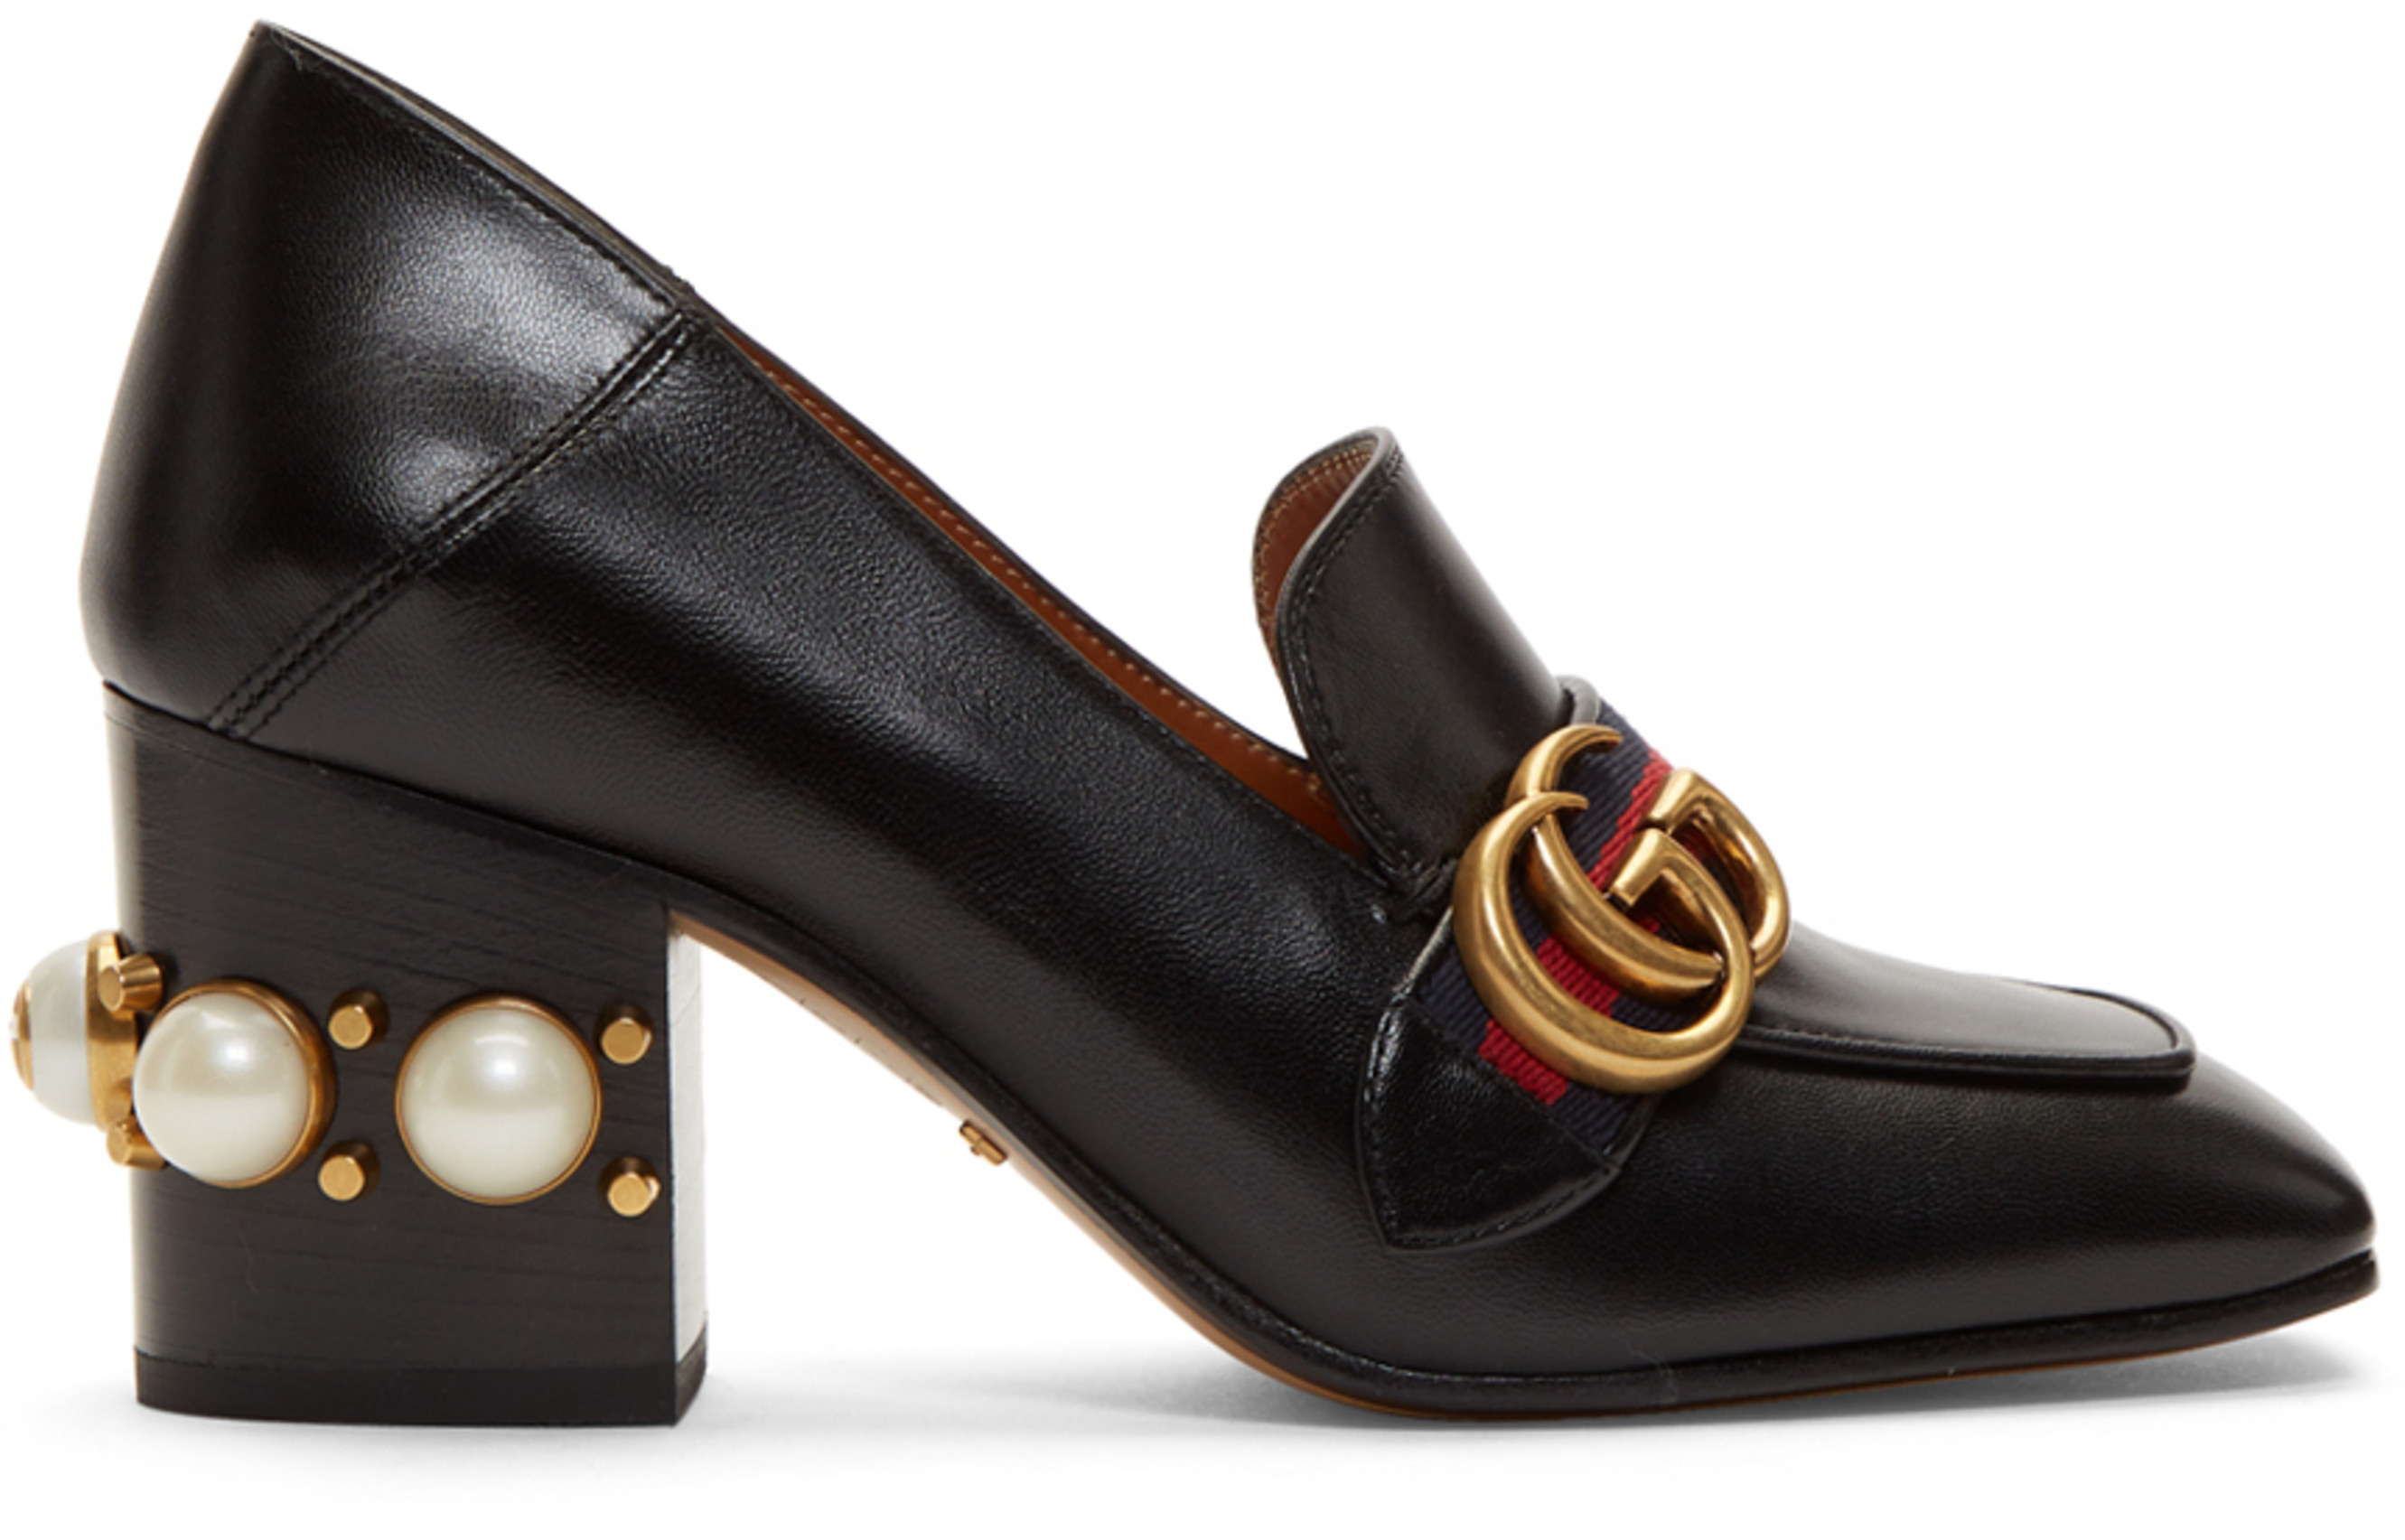 32bbba3a5cf2 Gucci shoes for Women